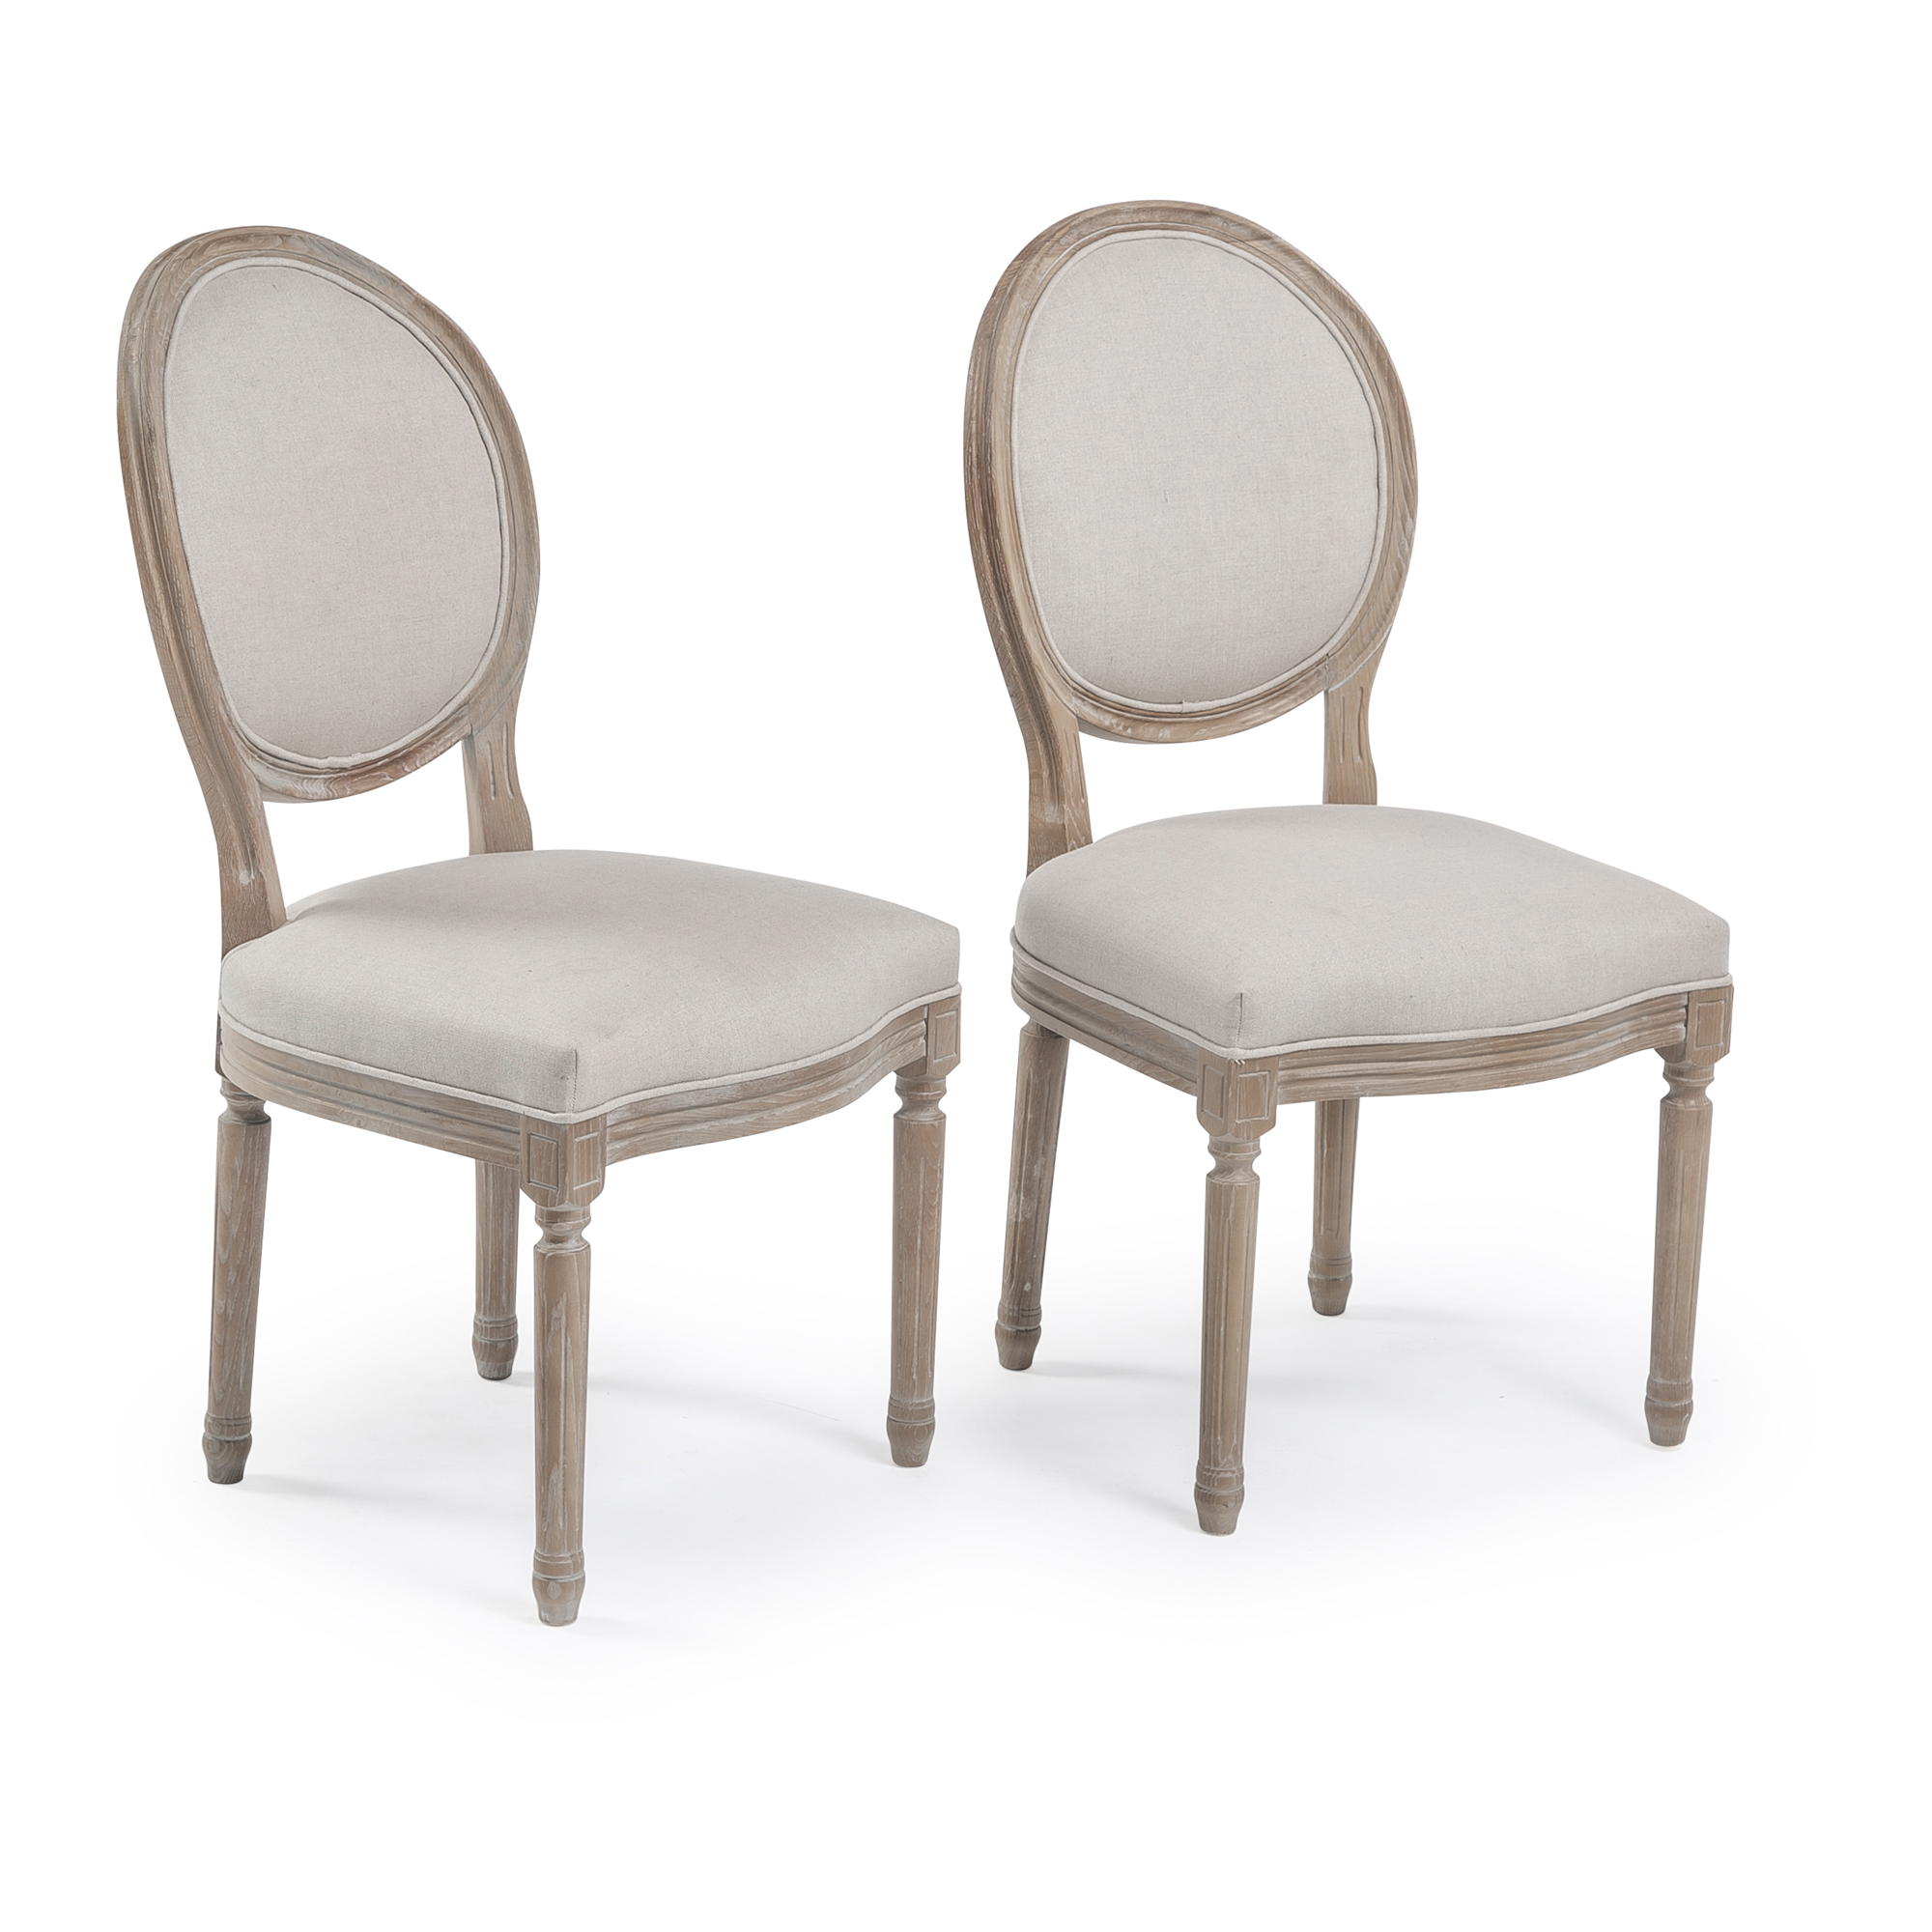 French Limed Ash Oval Back Upholstered Dining Chair (Set of 2)